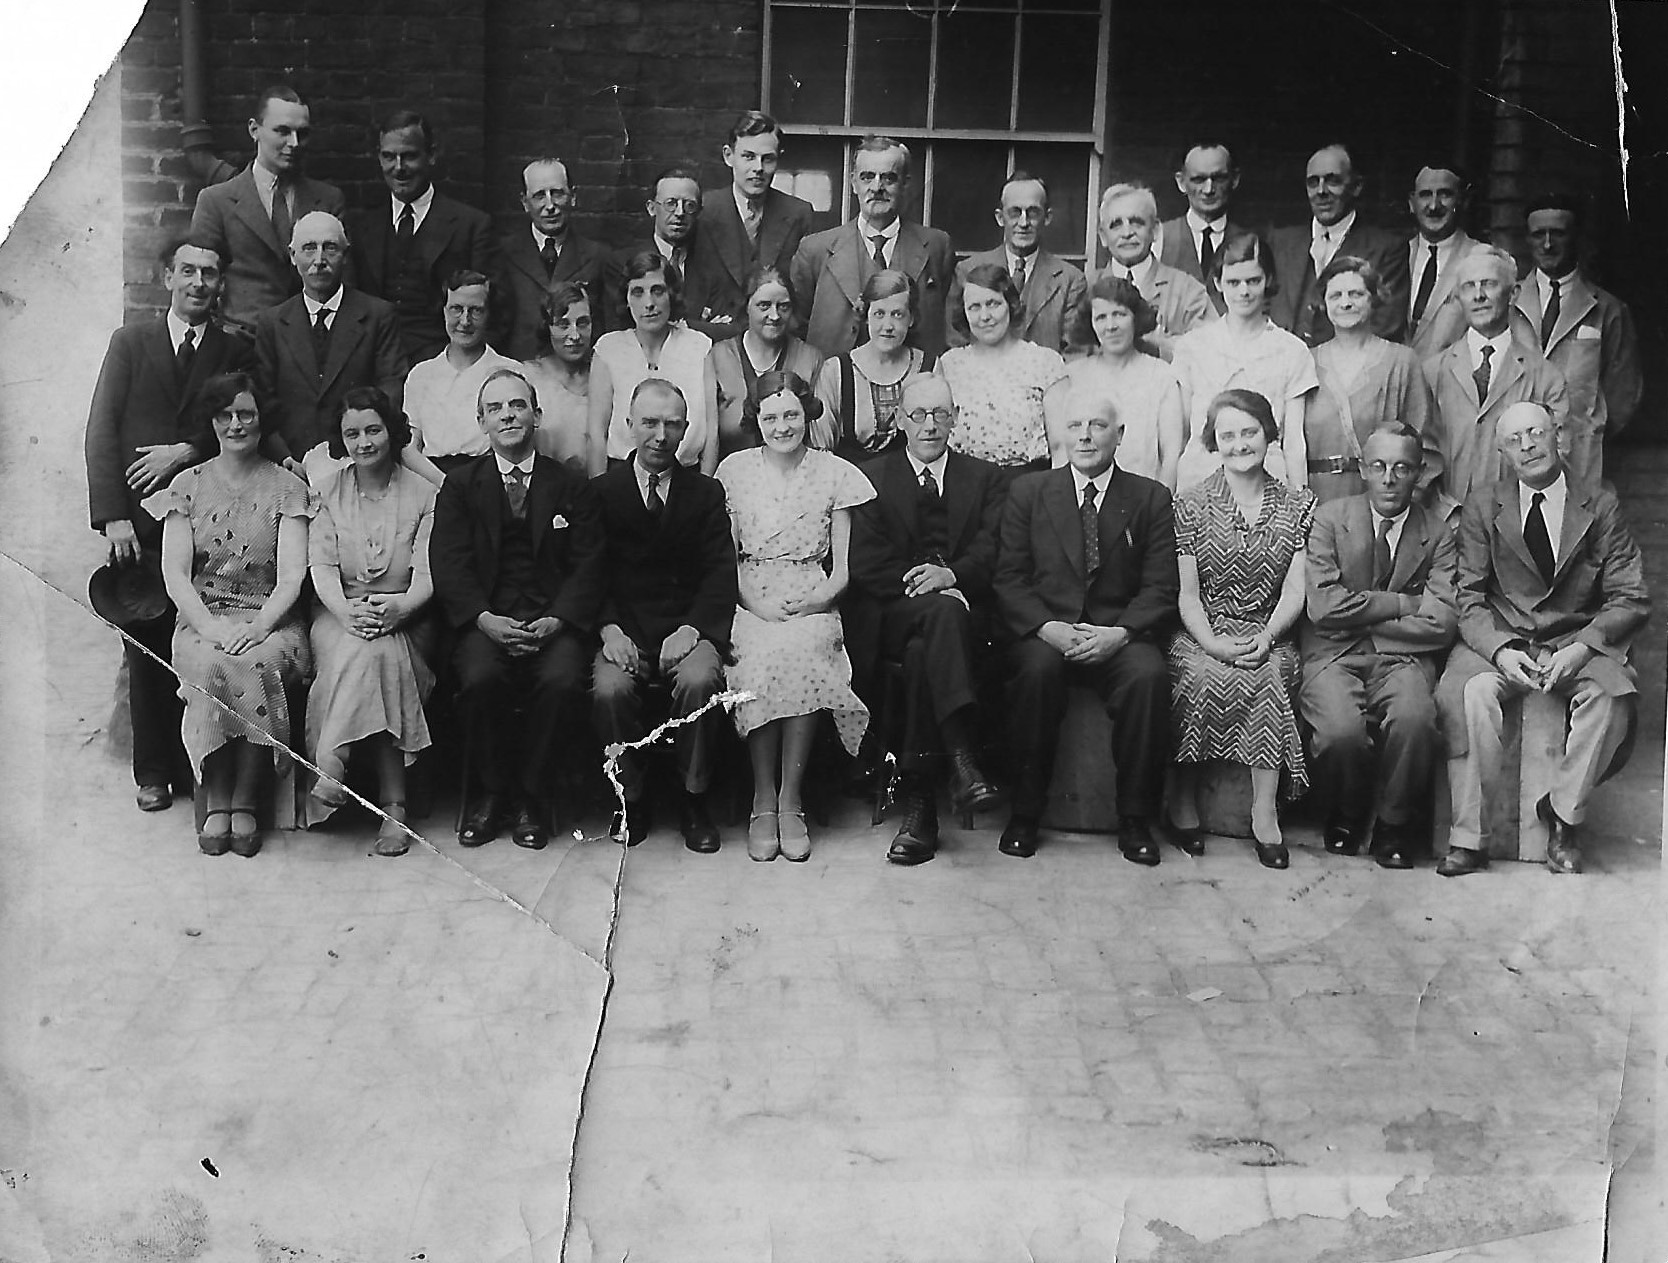 ridgeways-staff-photograph-taken-in-1920s.jpg